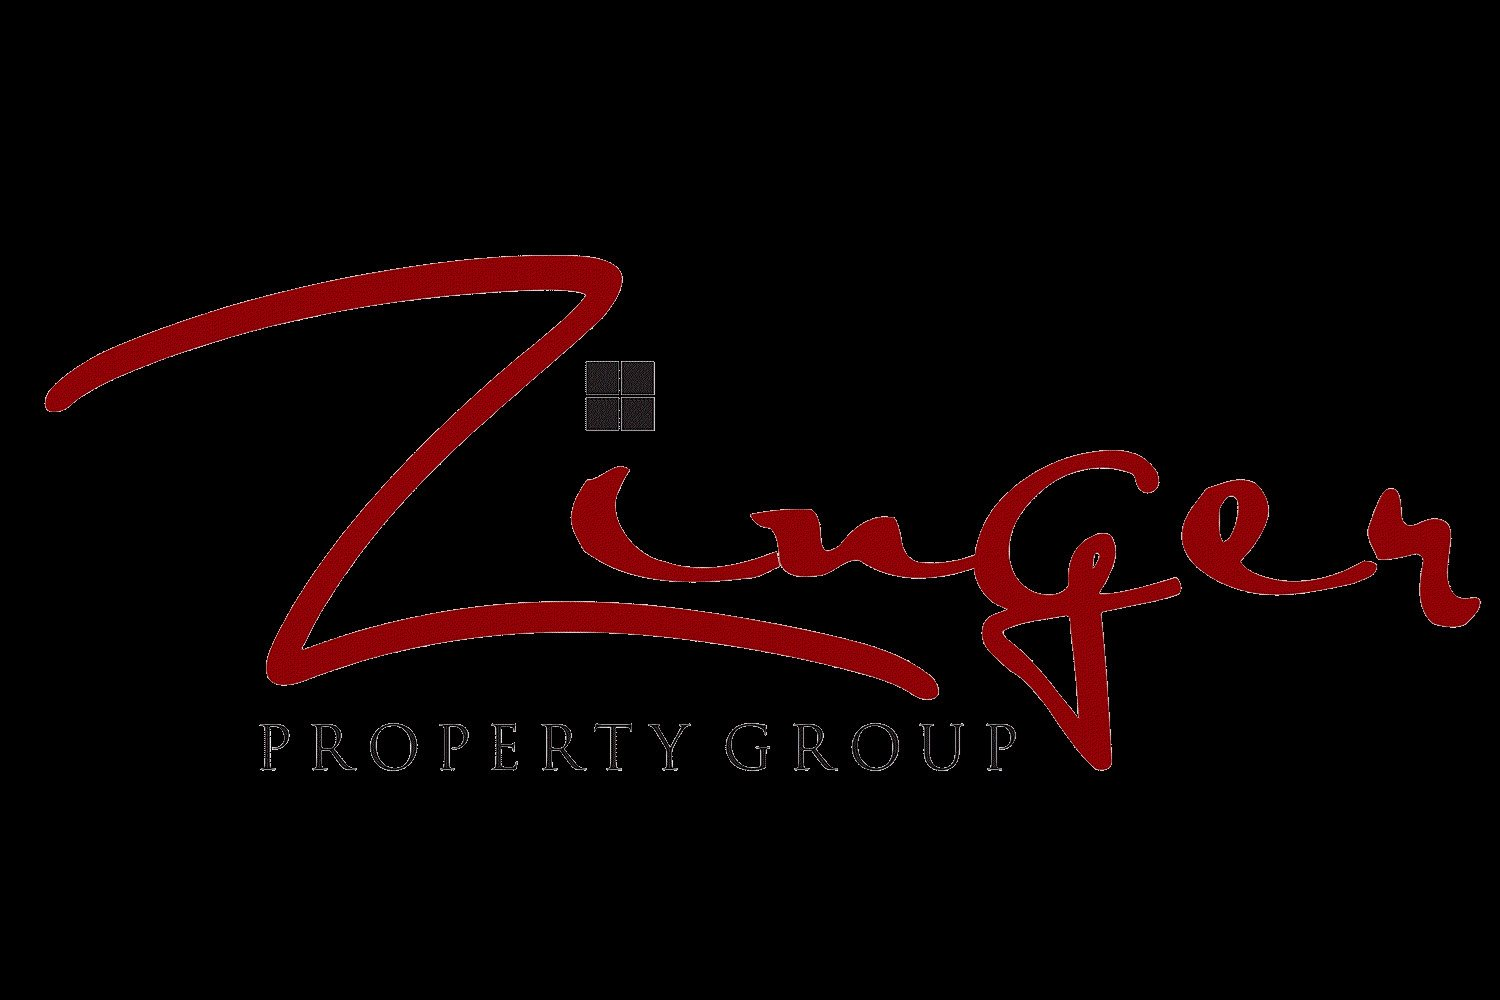 Zinger Property Group, Inc. Corporate ILS Logo 1